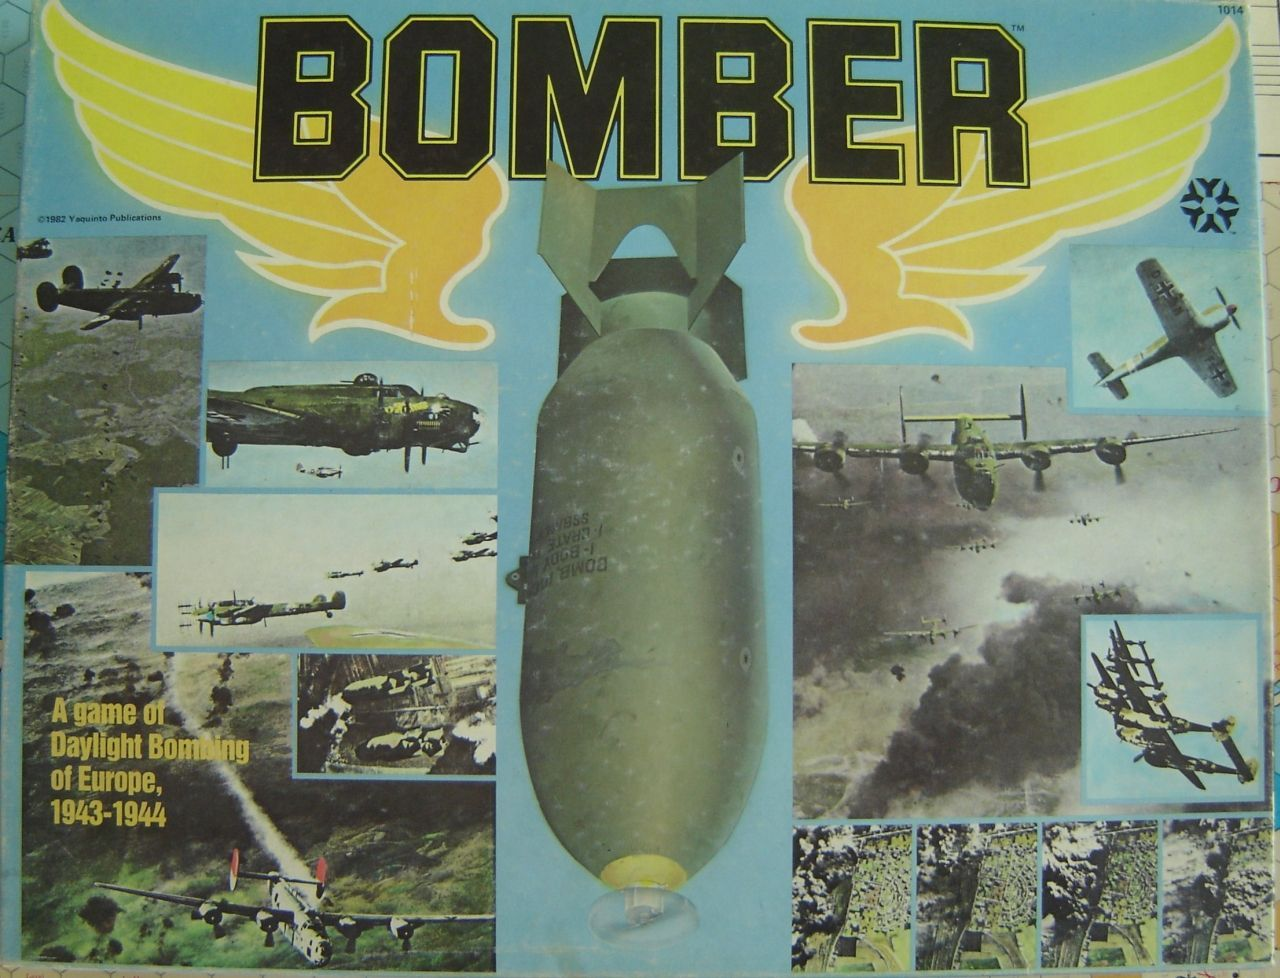 Bomber: A Game of Daylight Bombing of Europe, 1943-1944